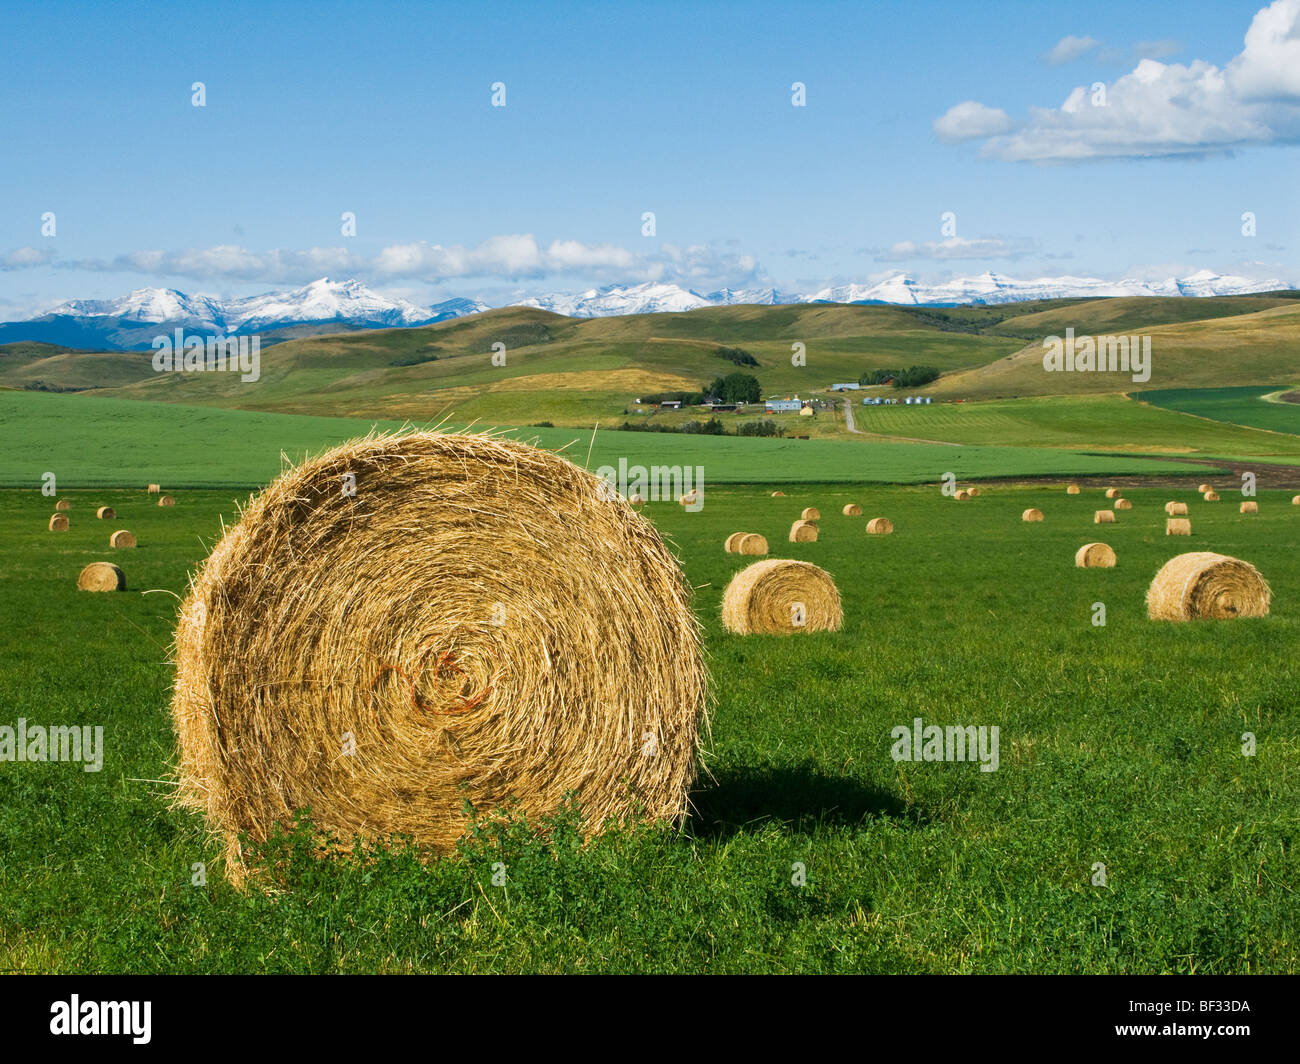 Agriculture - Round hay bales on an alfalfa field in the foothills of the Canadian Rockies in the distance / Alberta, Stock Photo